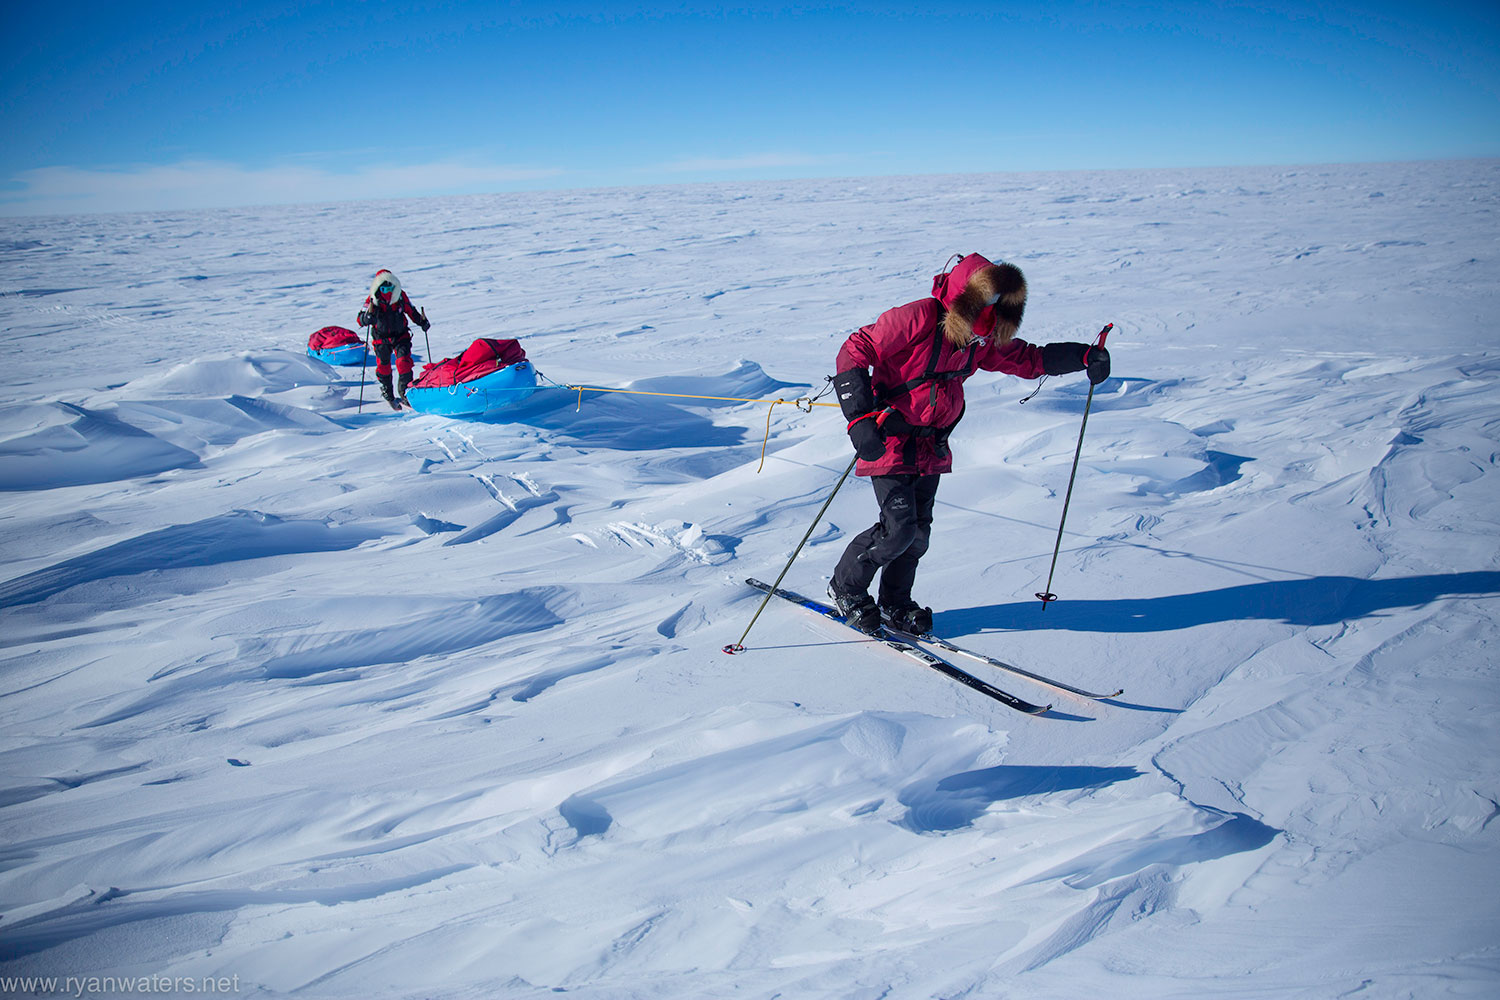 south pole full ski trip with mountain professionals